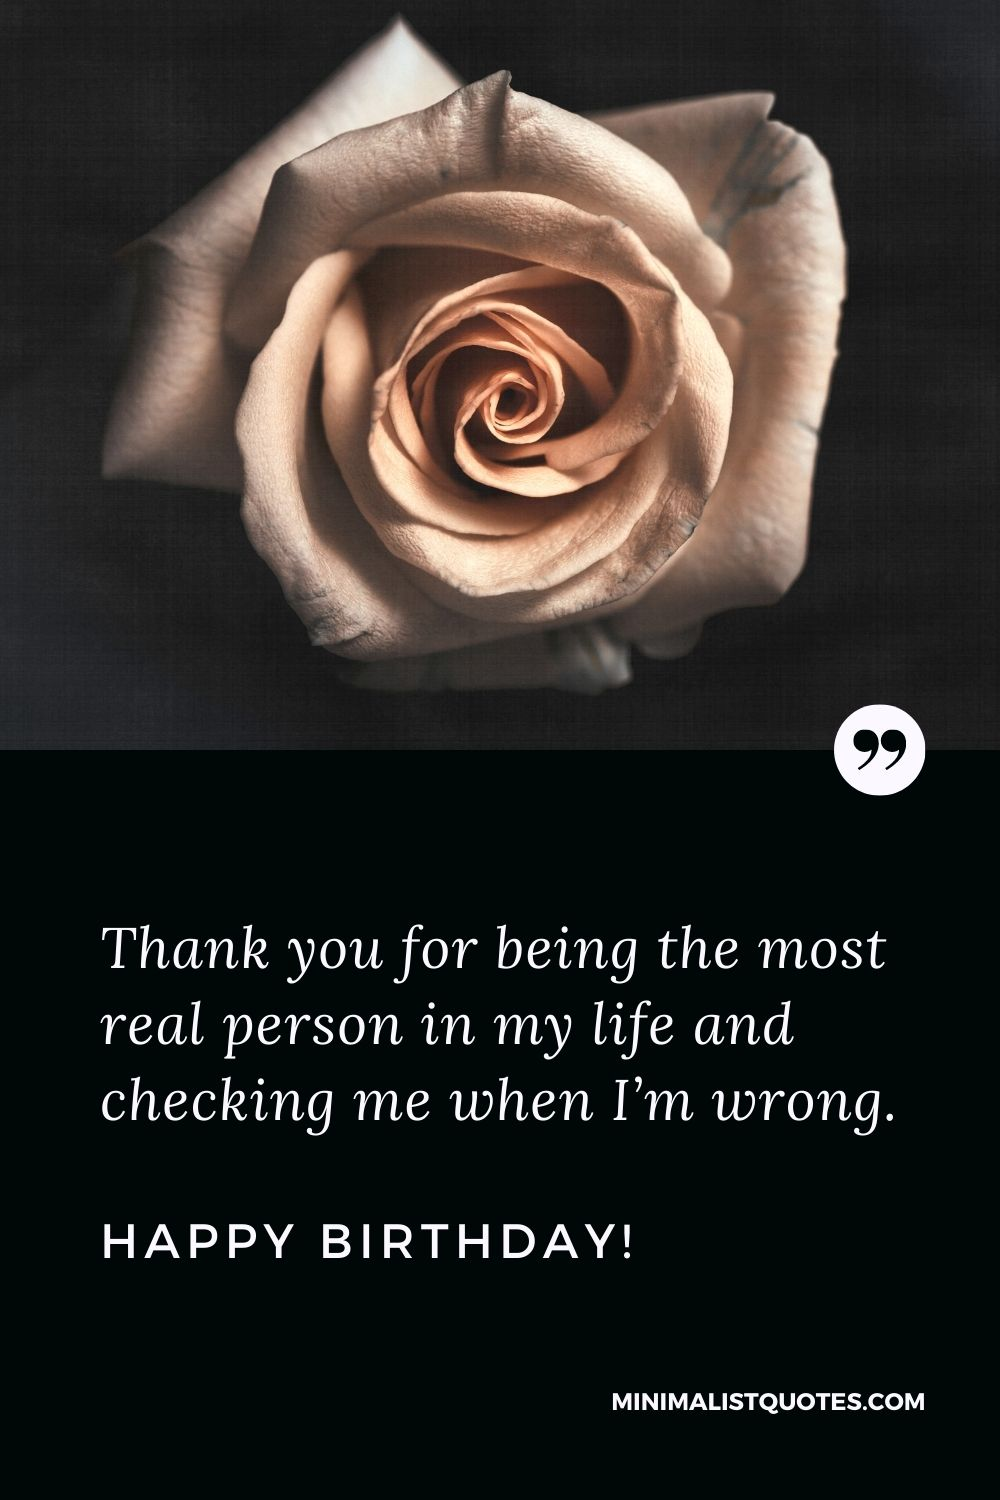 Birthday Quote, Wish & Message With Image: Thank you for being the most real person in my life and checking me when I'm wrong. Happy Birthday!